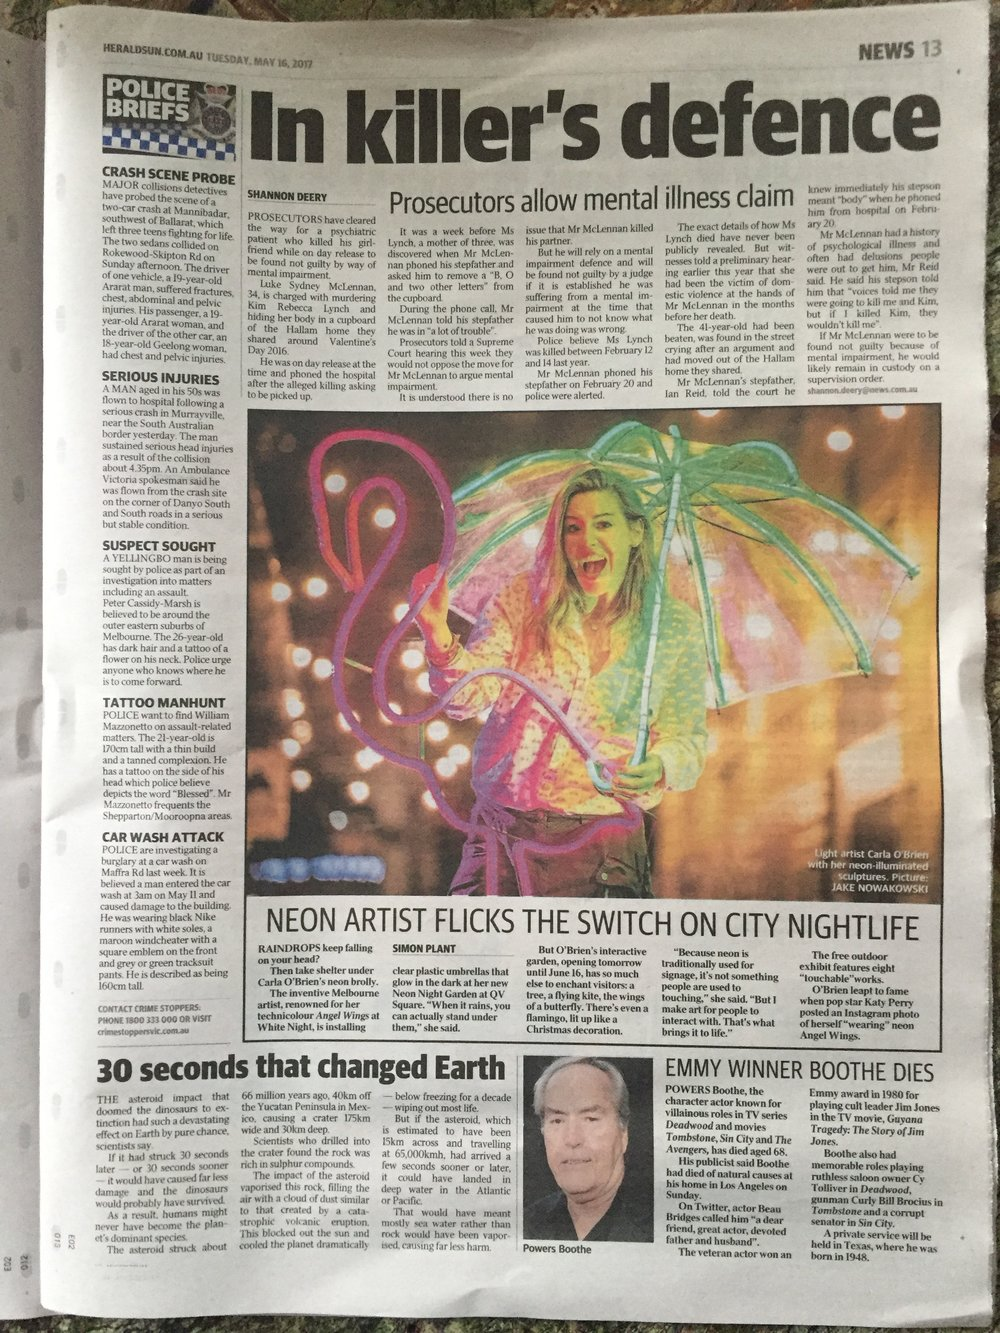 20170516 Herald Sun Neon Artist flicks the switch on city nightlife.jpeg